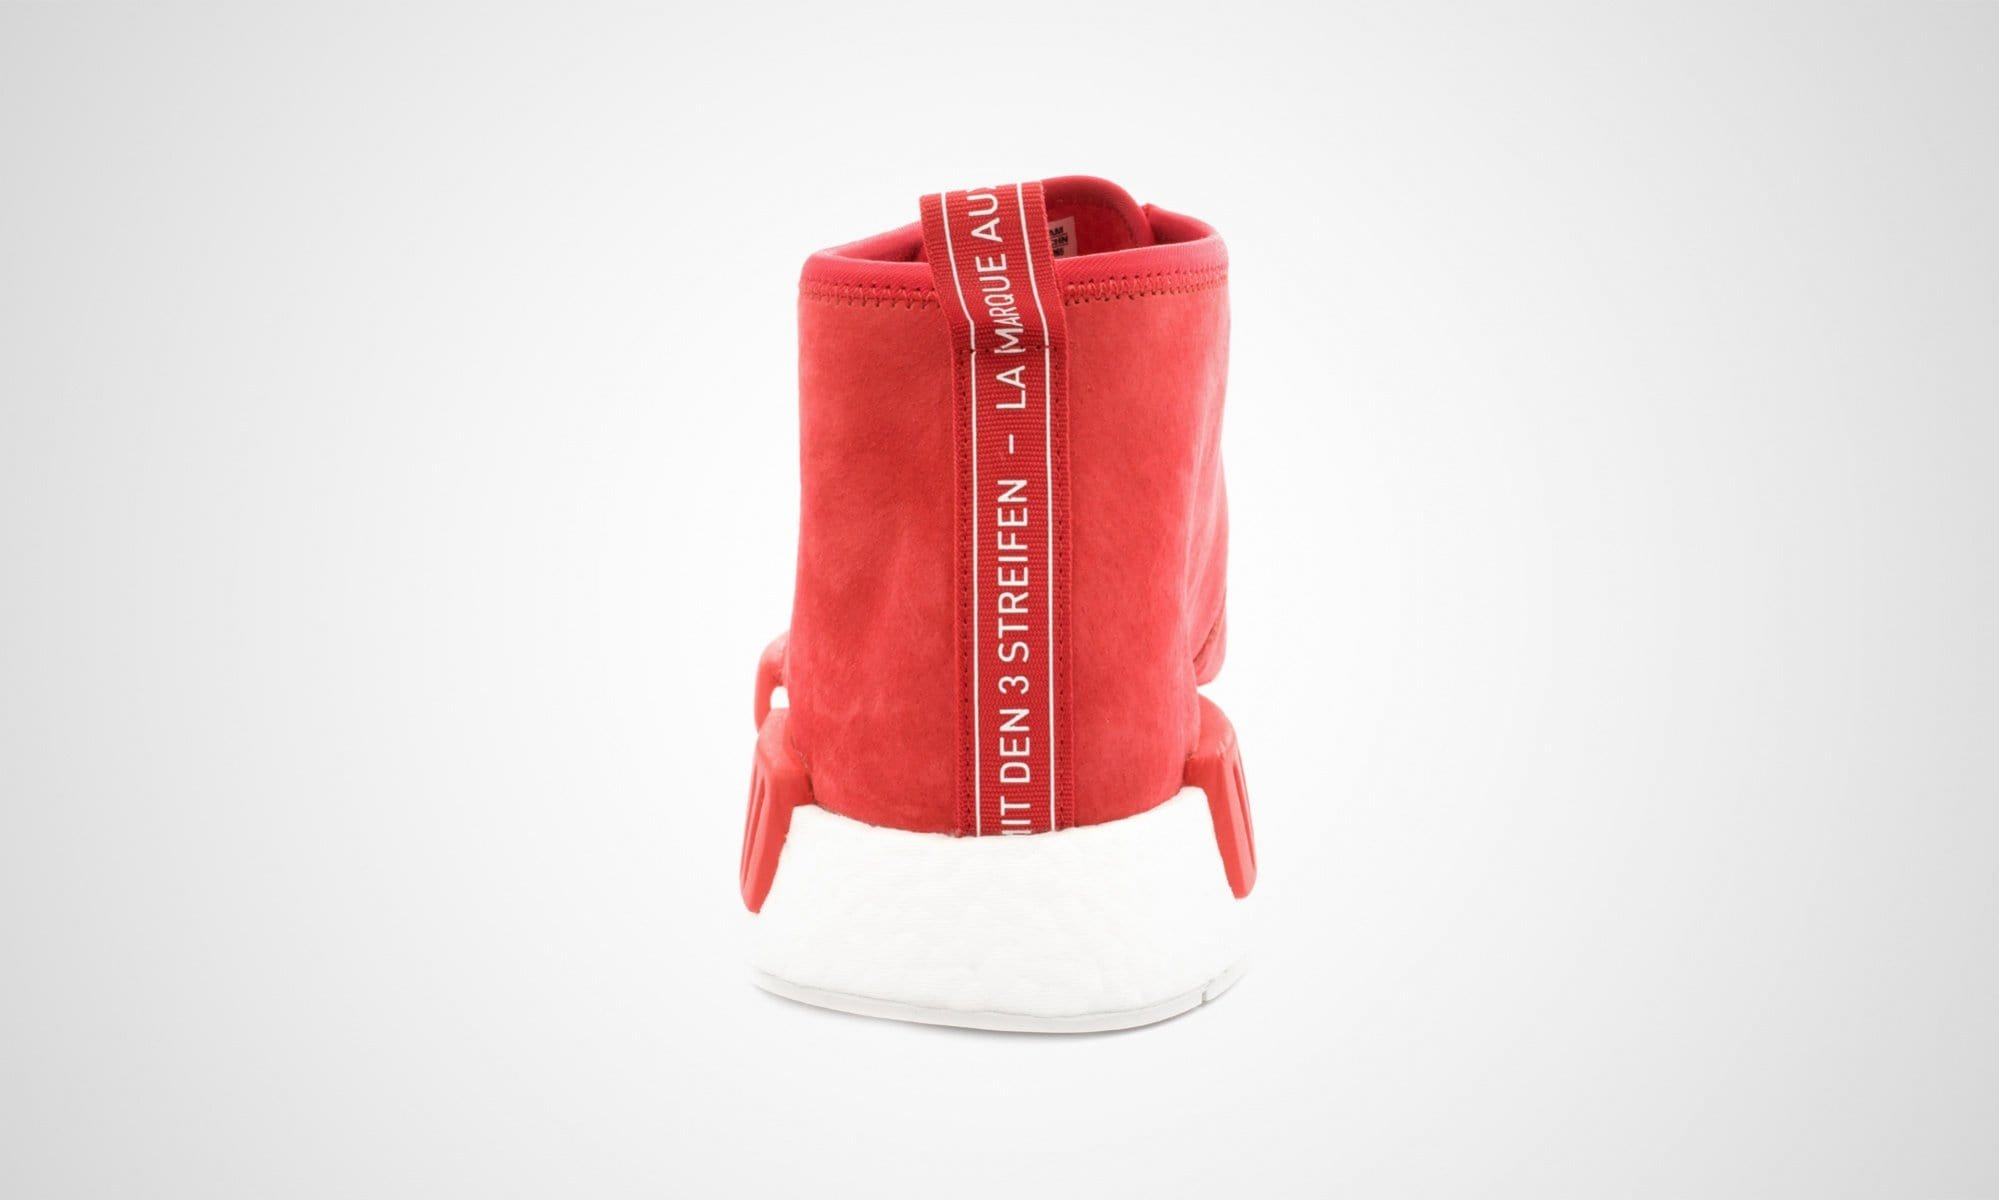 ADIDAS ORIGINALS NMD C1 CHUKKA BOOST (RED - WHITE) - Kick Game